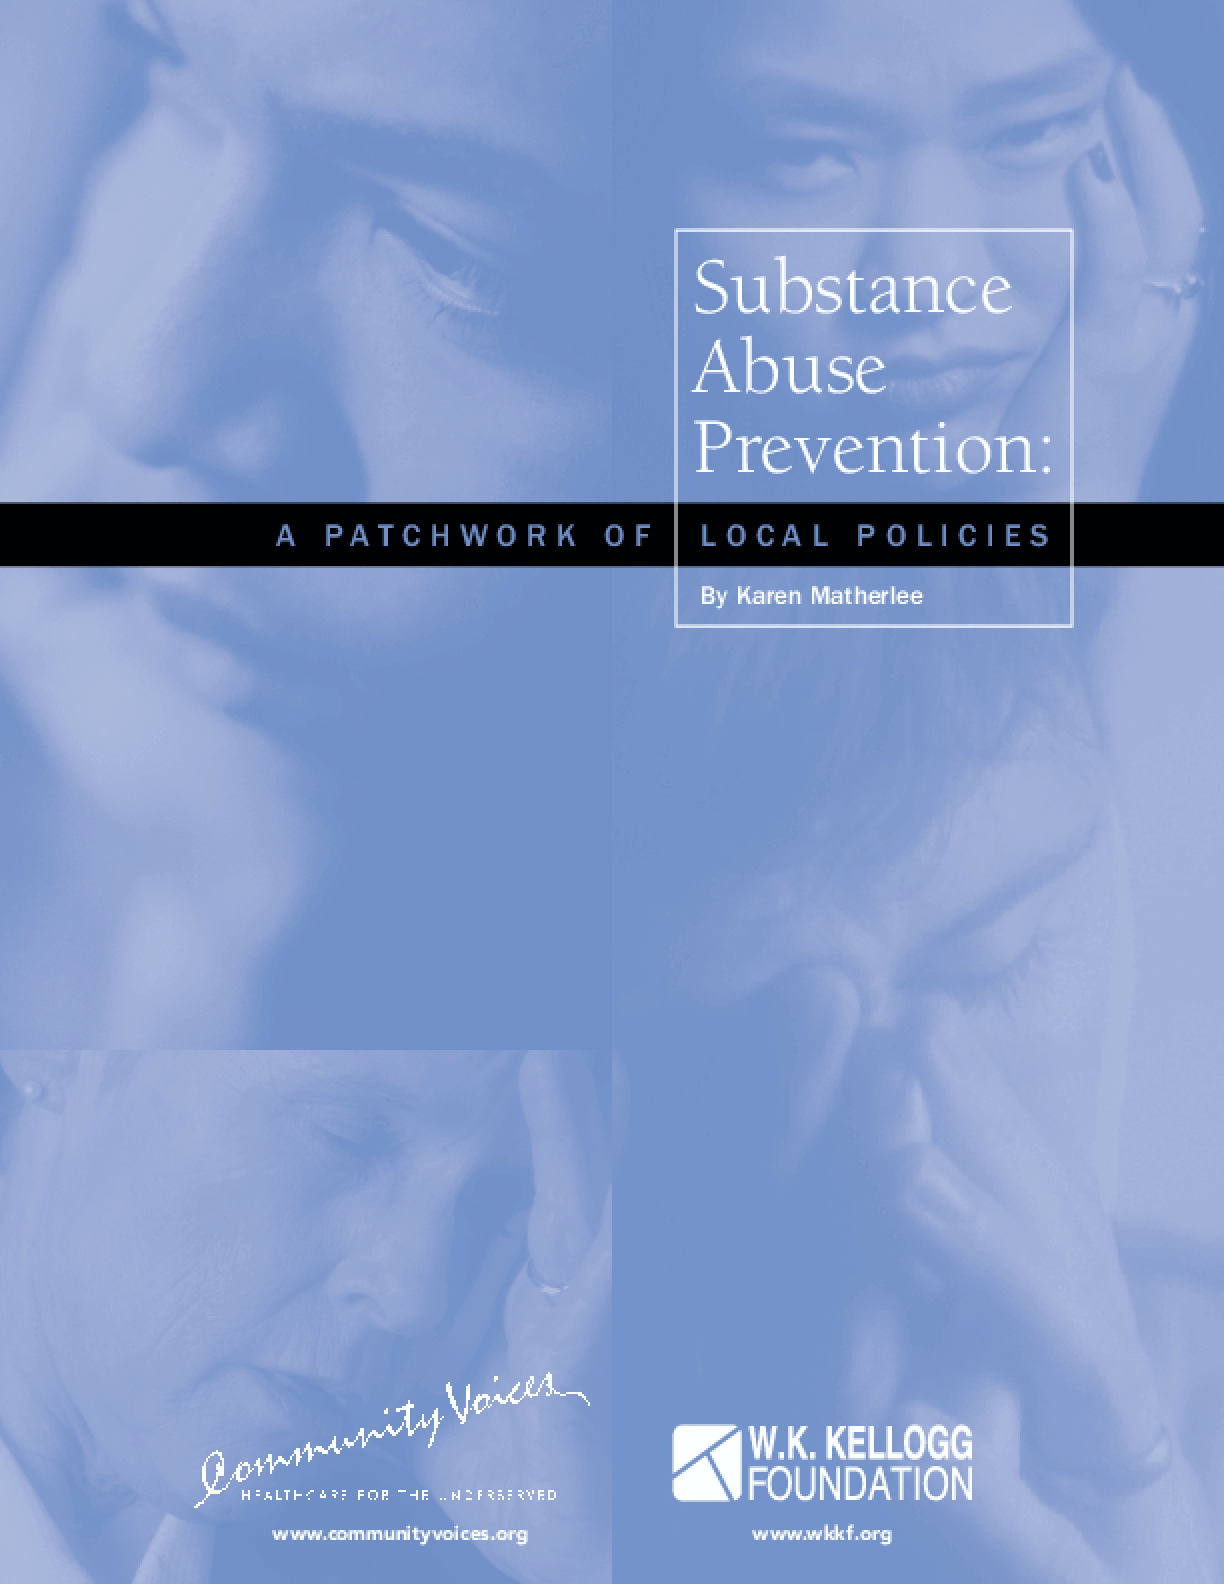 Substance Abuse Prevention: A Patchwork of Local Policies